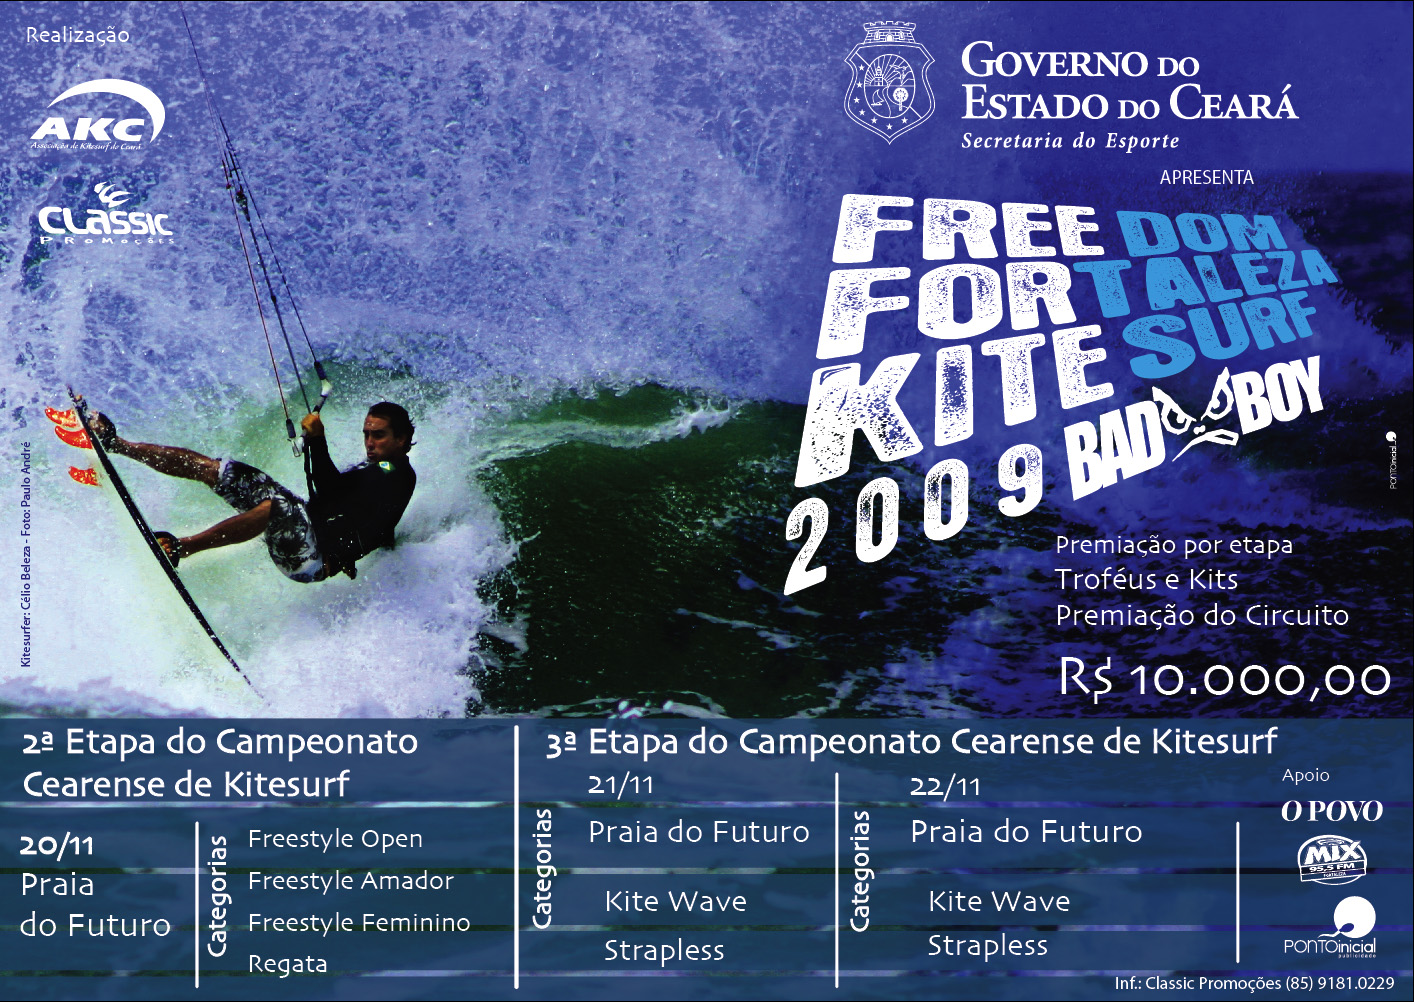 02_Free For Kite Cartaz 2009 II Etapa baixa.jpg